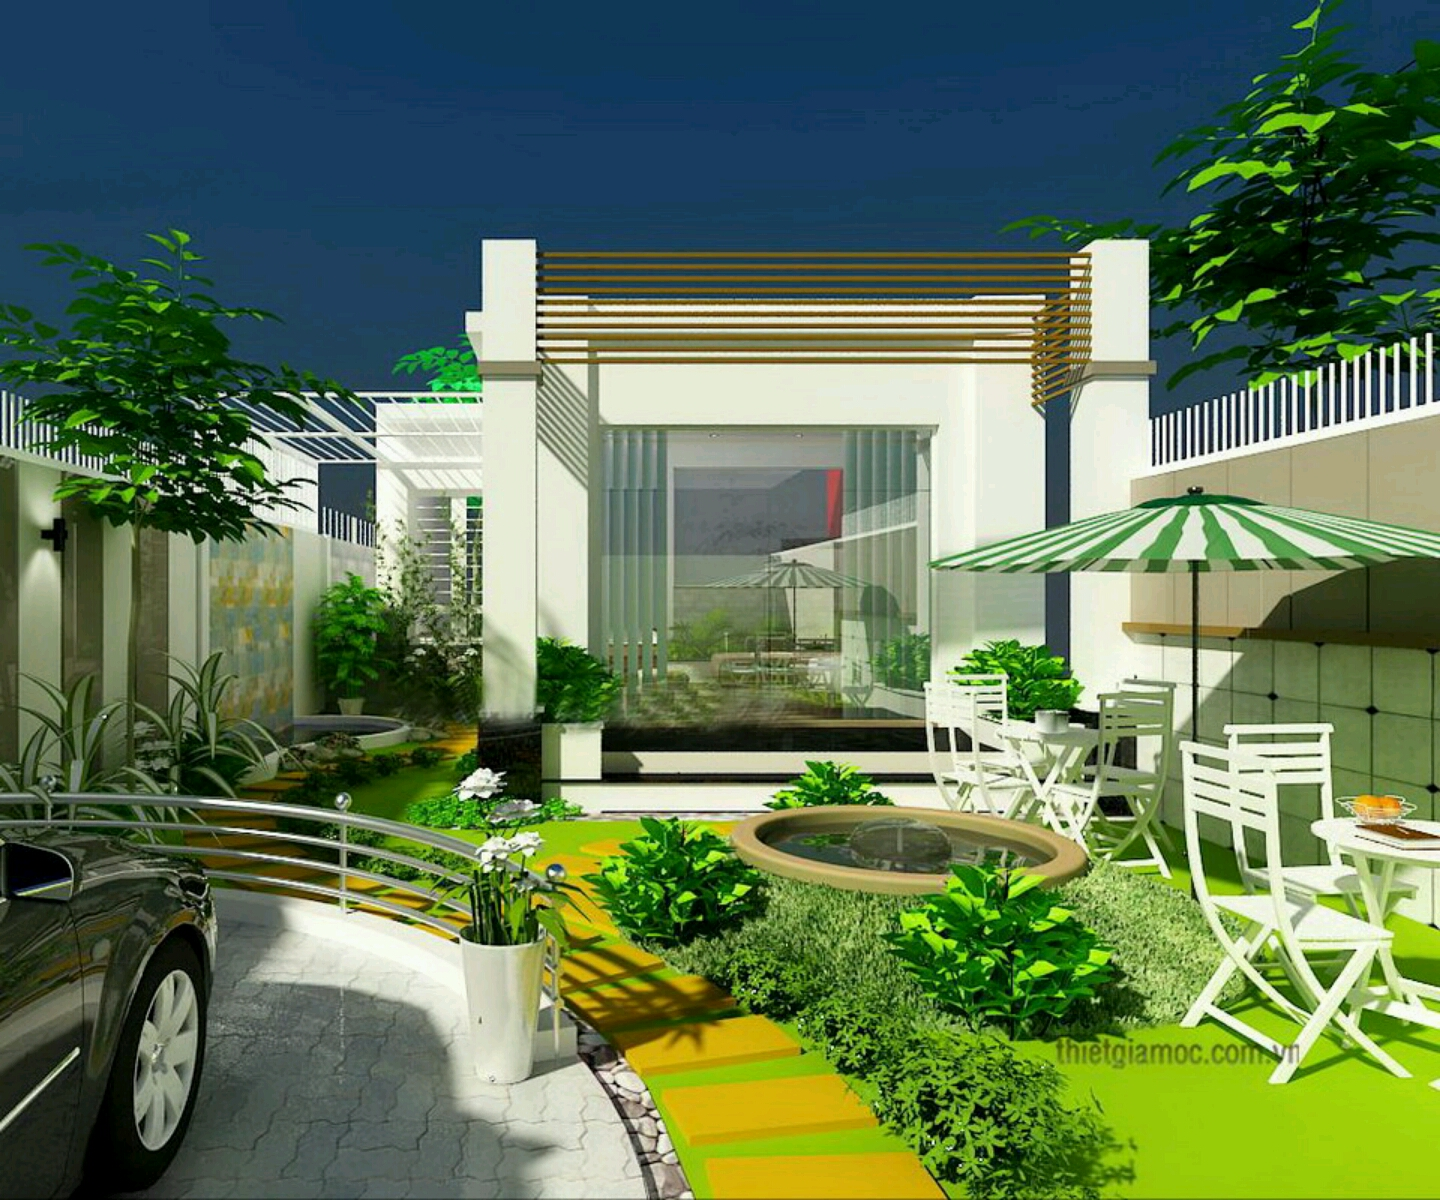 Modern homes beautiful garden designs ideas new home designs Home and garden design ideas